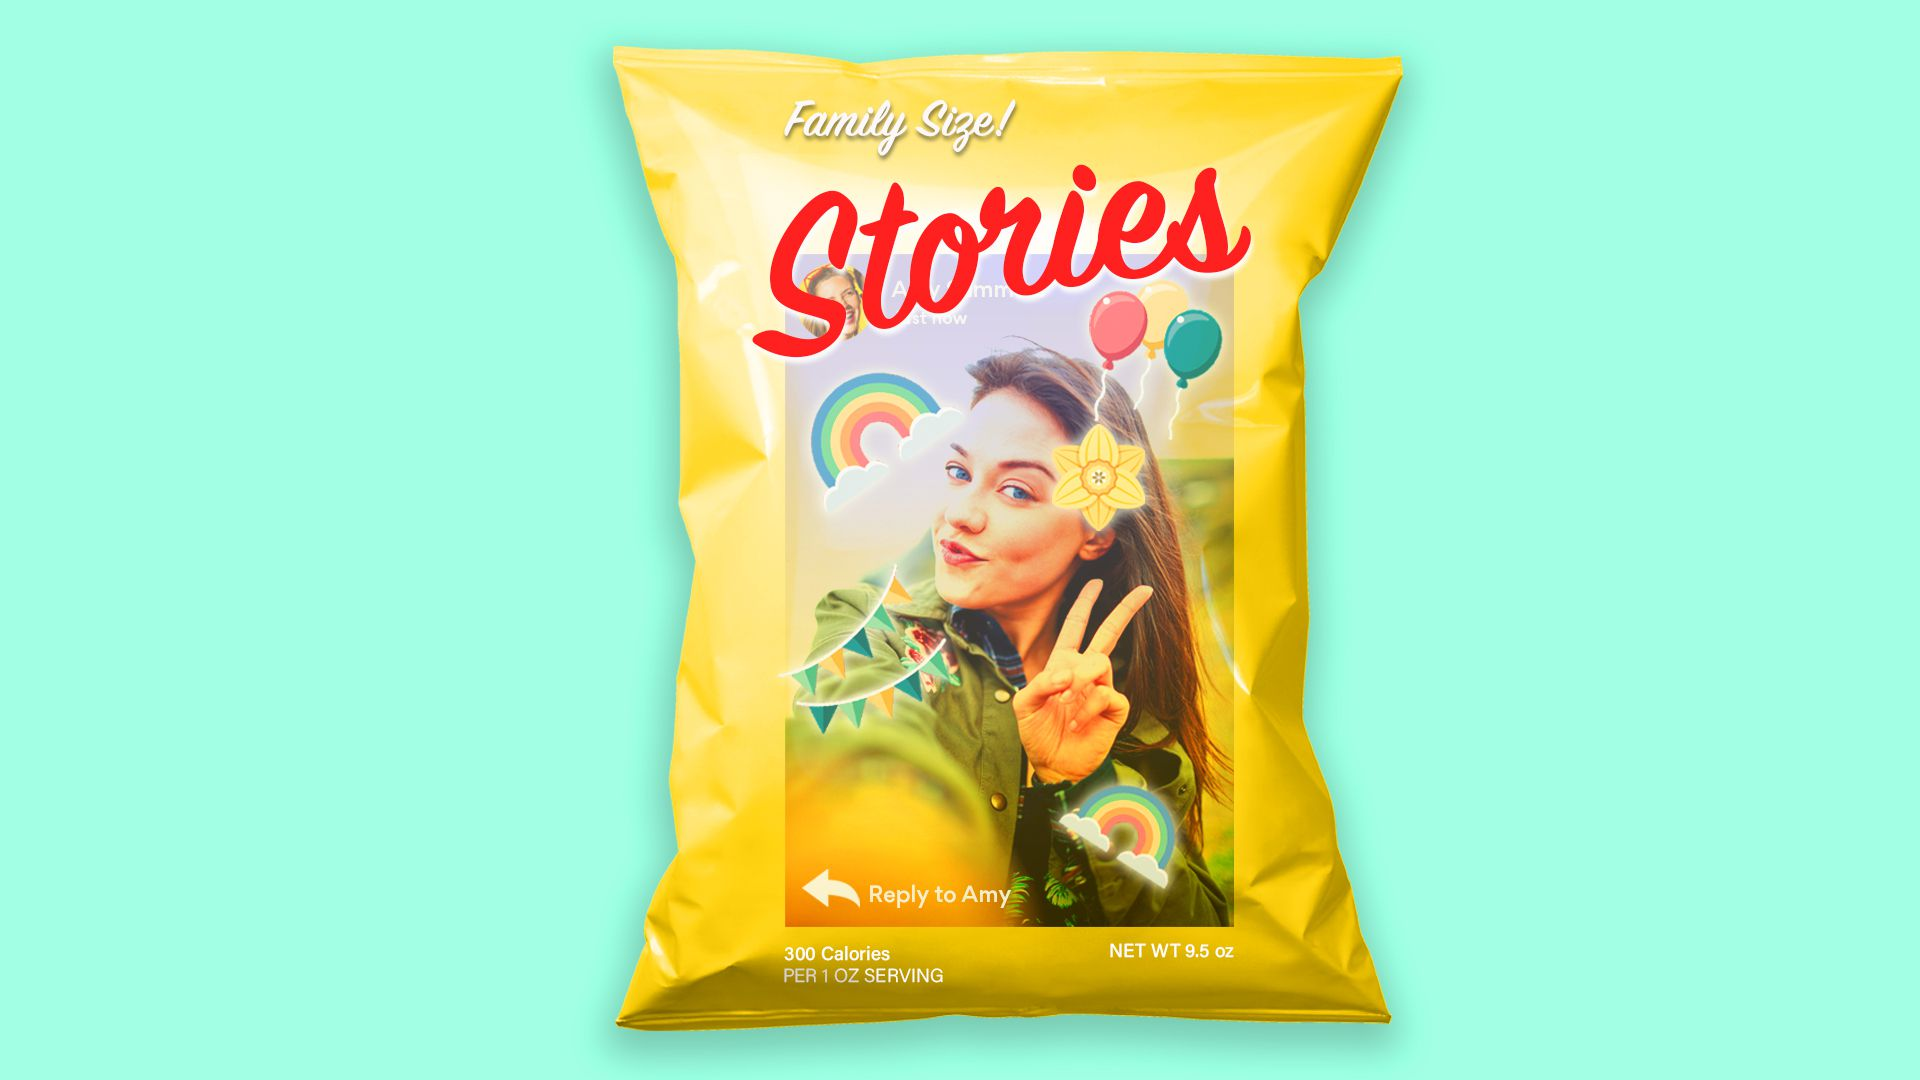 Facebook Stories, pictured as a bag of potato chips